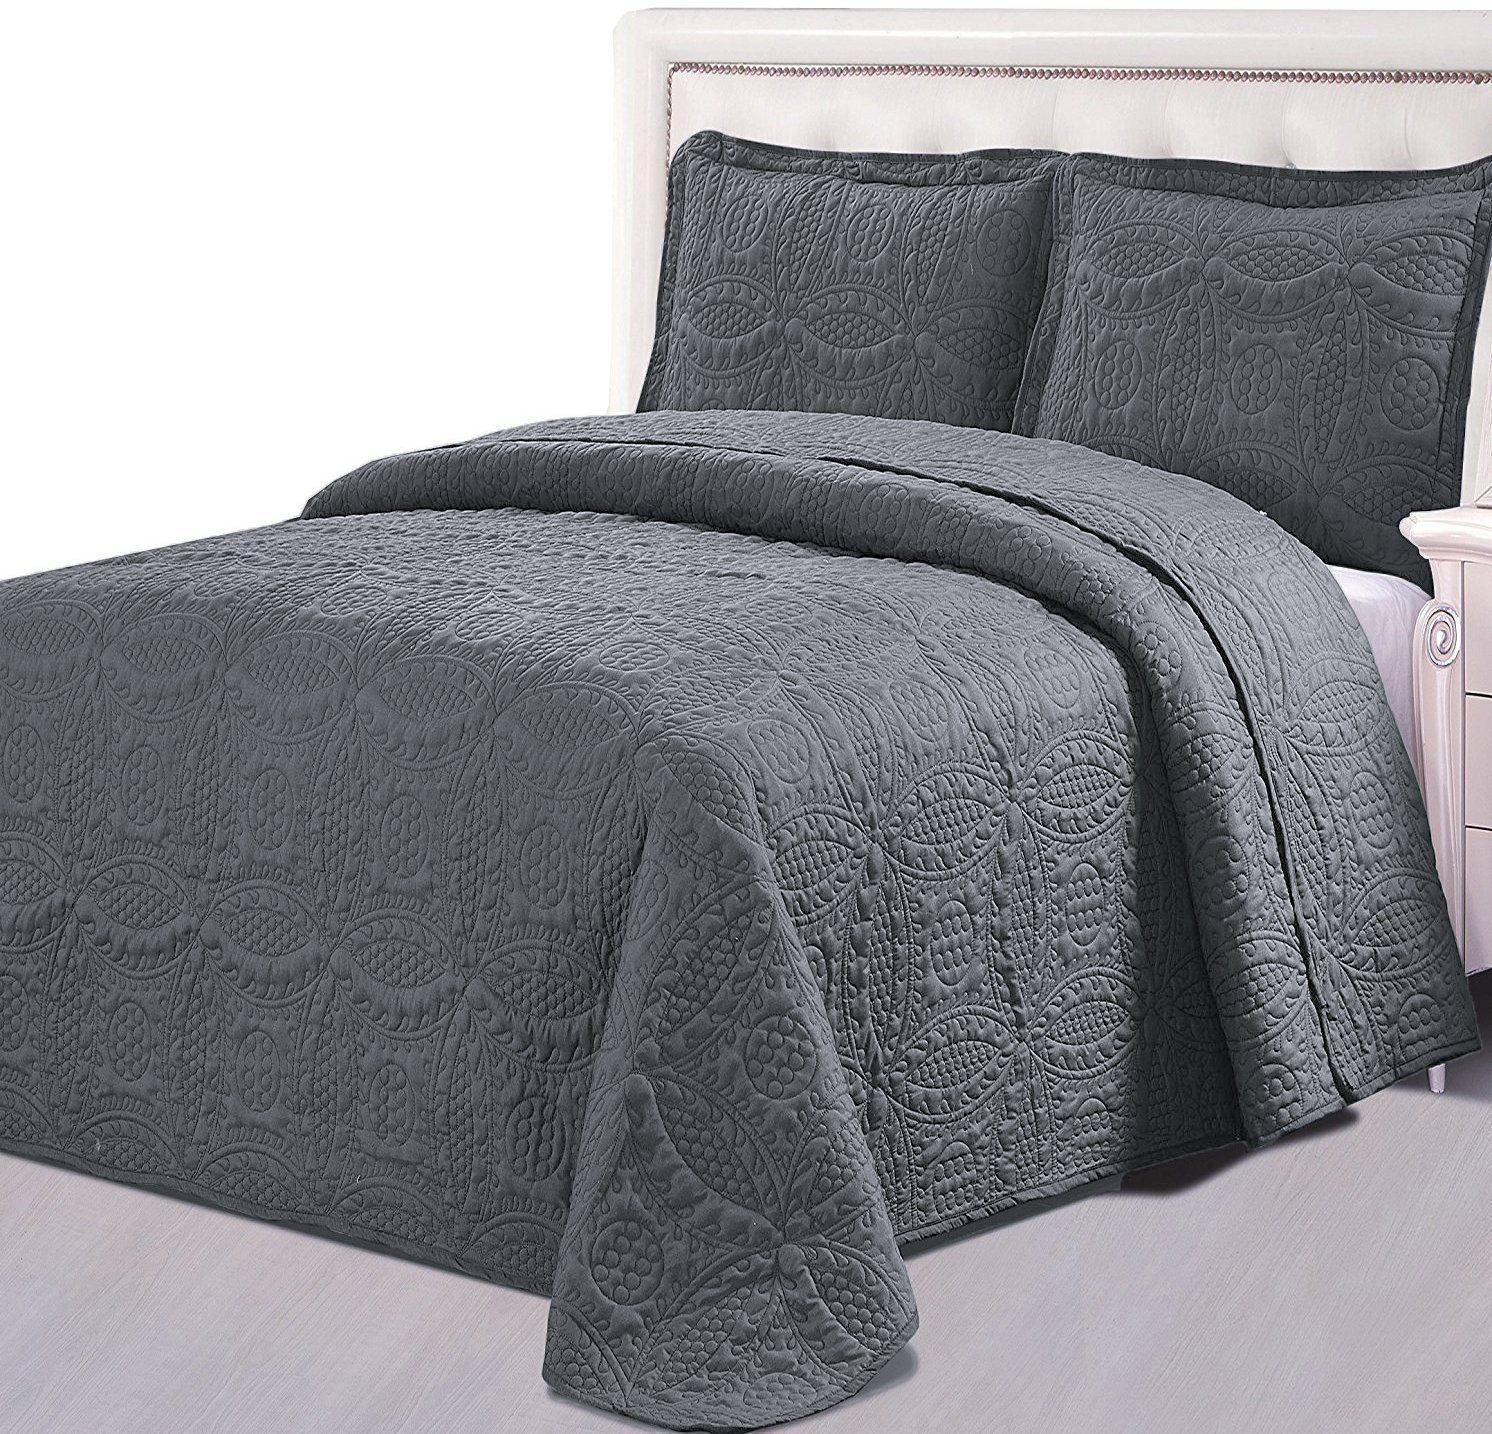 Utopia Bedding 2-Piece Bedspread Set (Twin, Charcoal Grey) - Luxurious Brushed Microfiber Coverlet Set - Quilted Embroidery Bed Cover with Pillow Case - Soft and Comfortable - Machine Washable UB0746